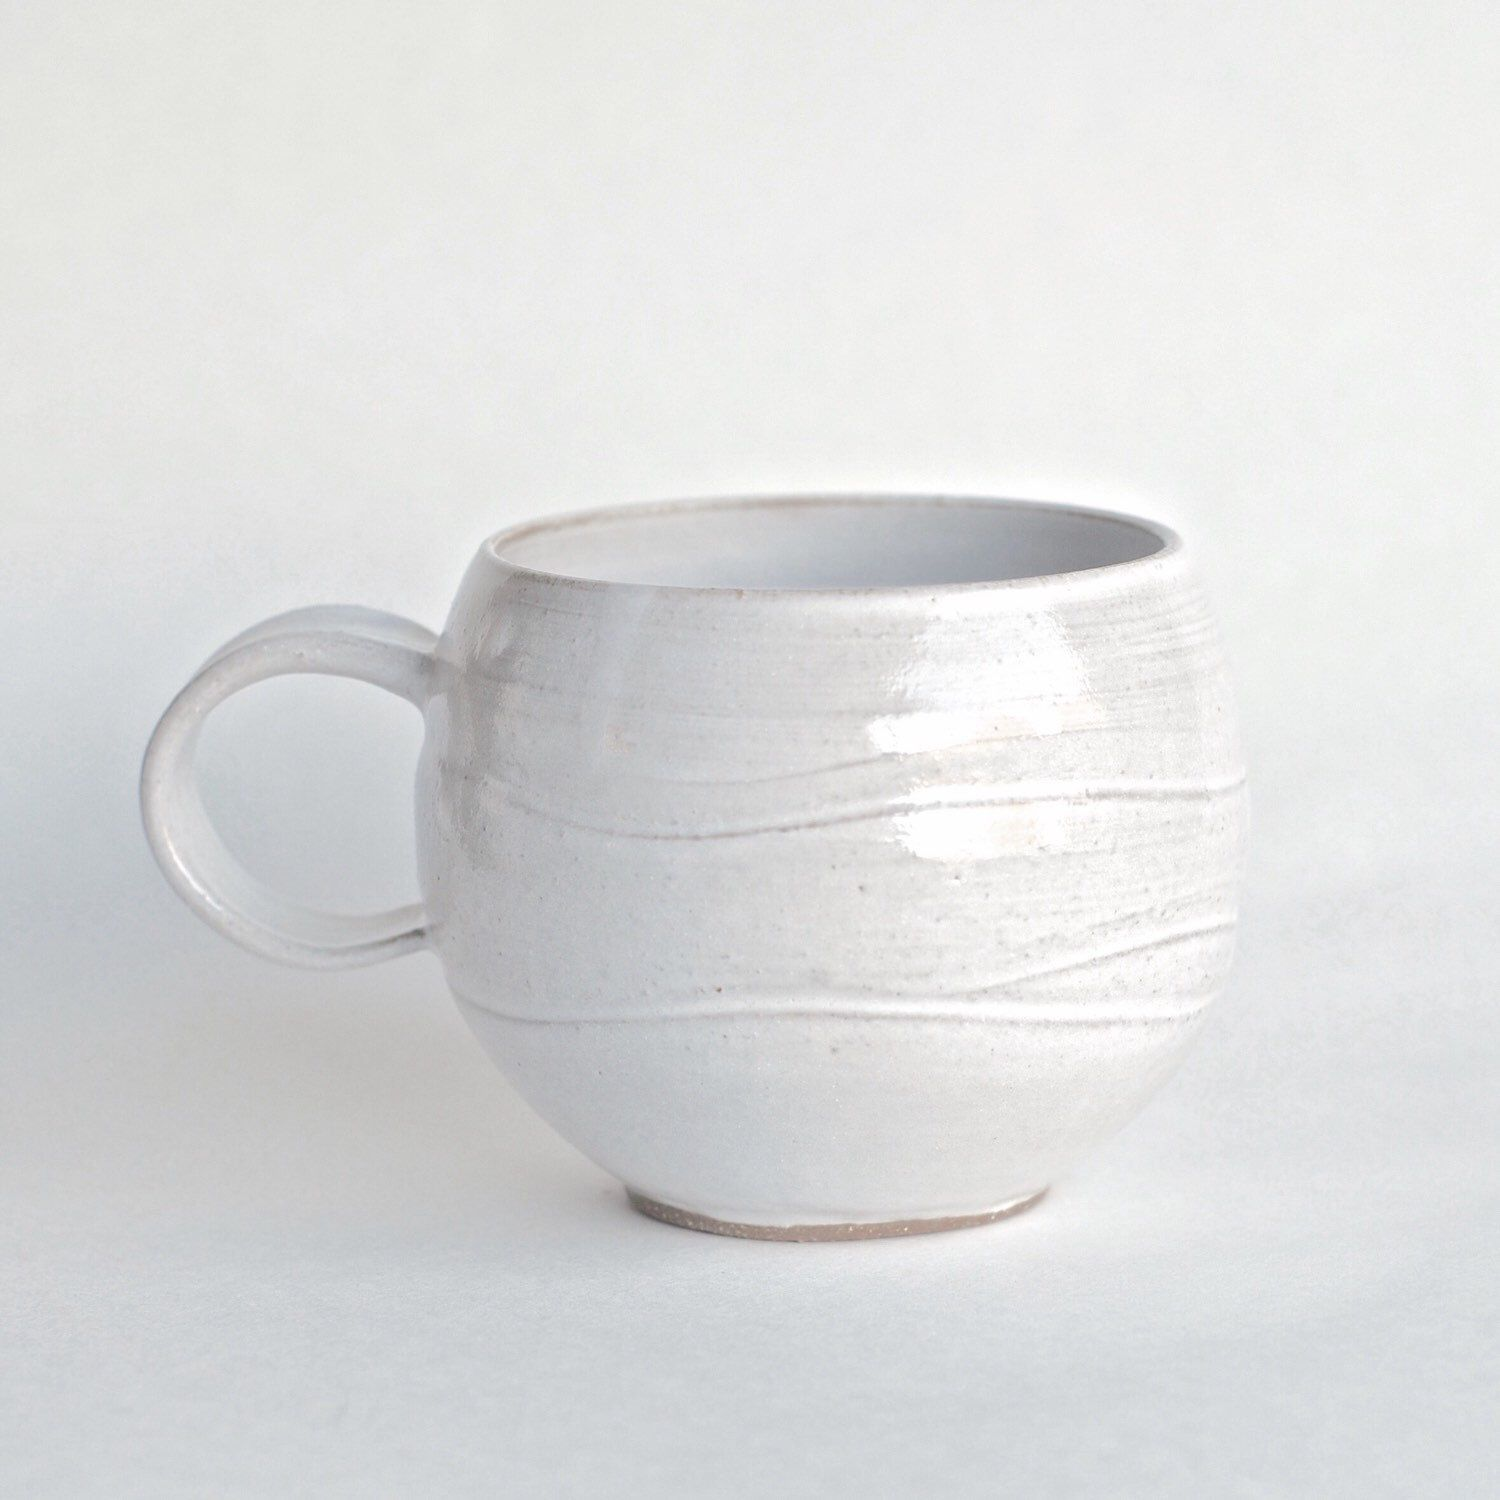 Drink your morning coffee or tea in style glassware